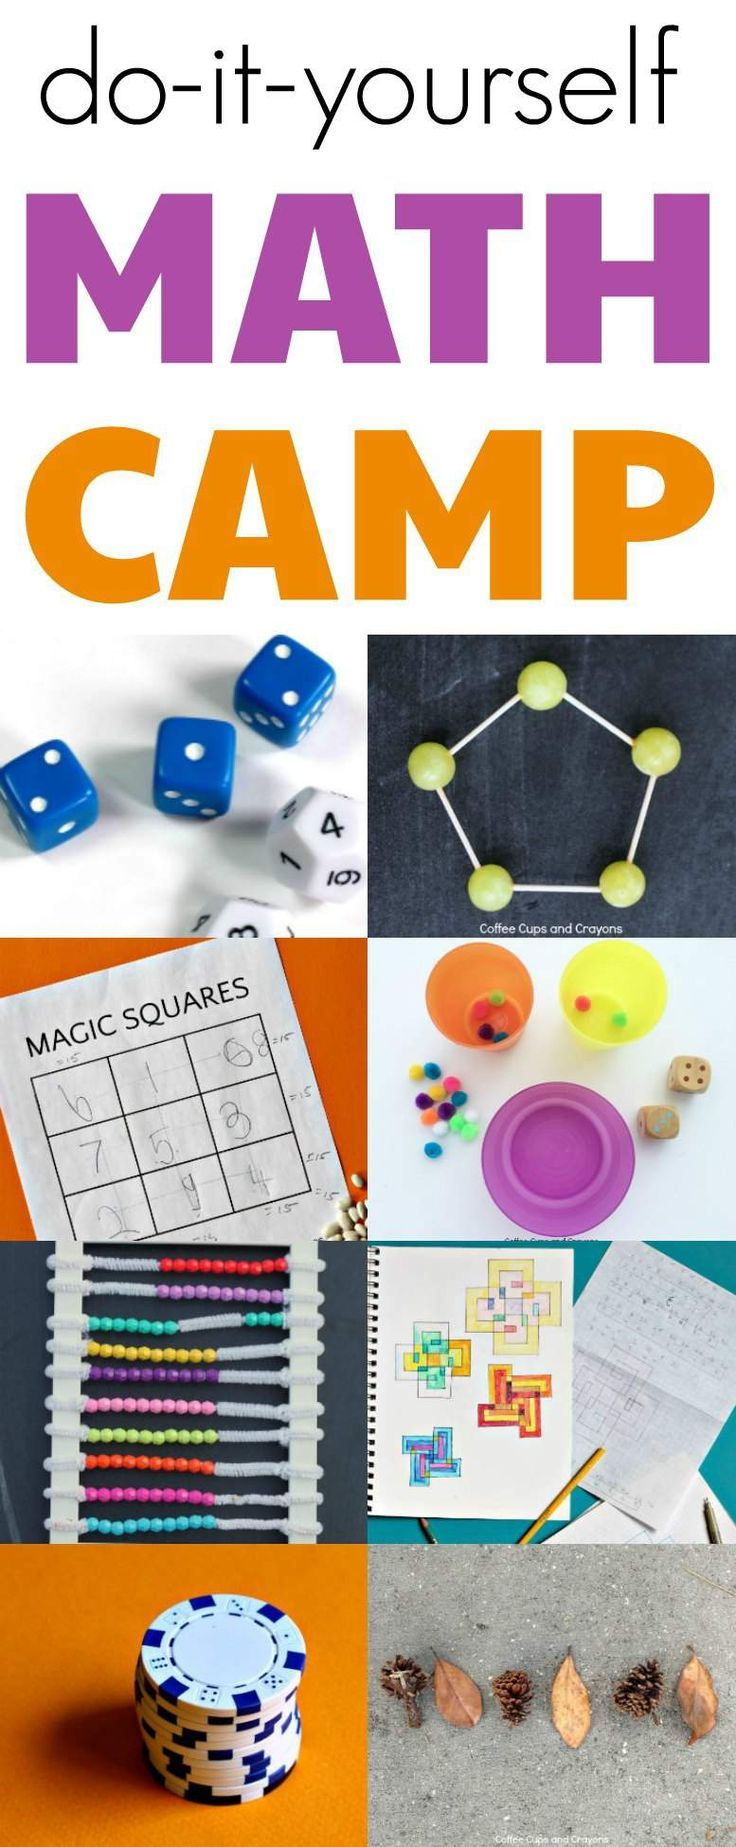 Best Hands On Math Images On Pinterest School Winter And Games - 8 fun activities for kids in rome